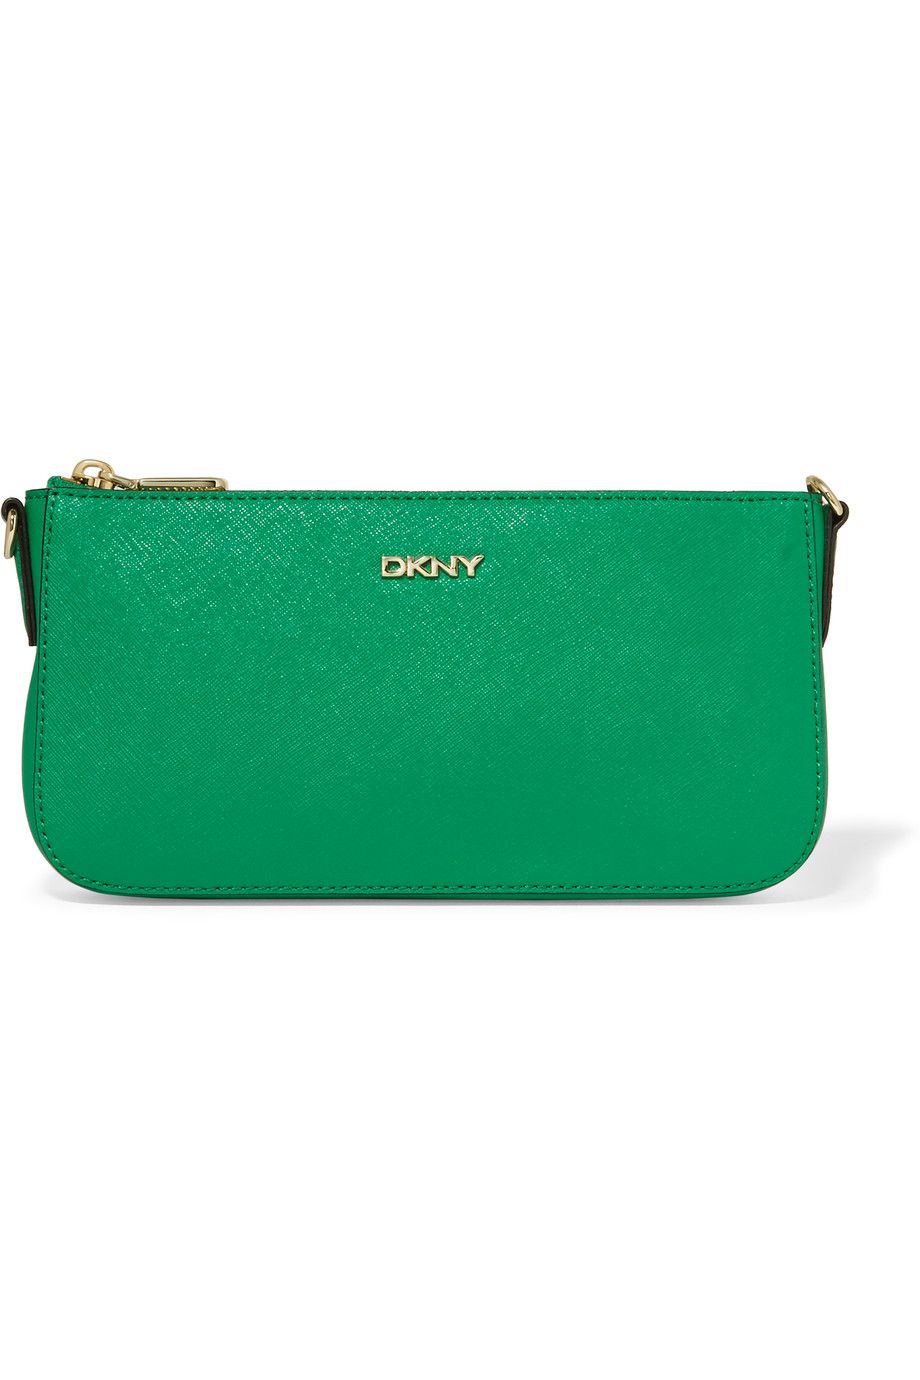 DKNY Textured-Leather Shoulder Bag. #dkny #bags #shoulder bags #hand bags #leather #glitter #